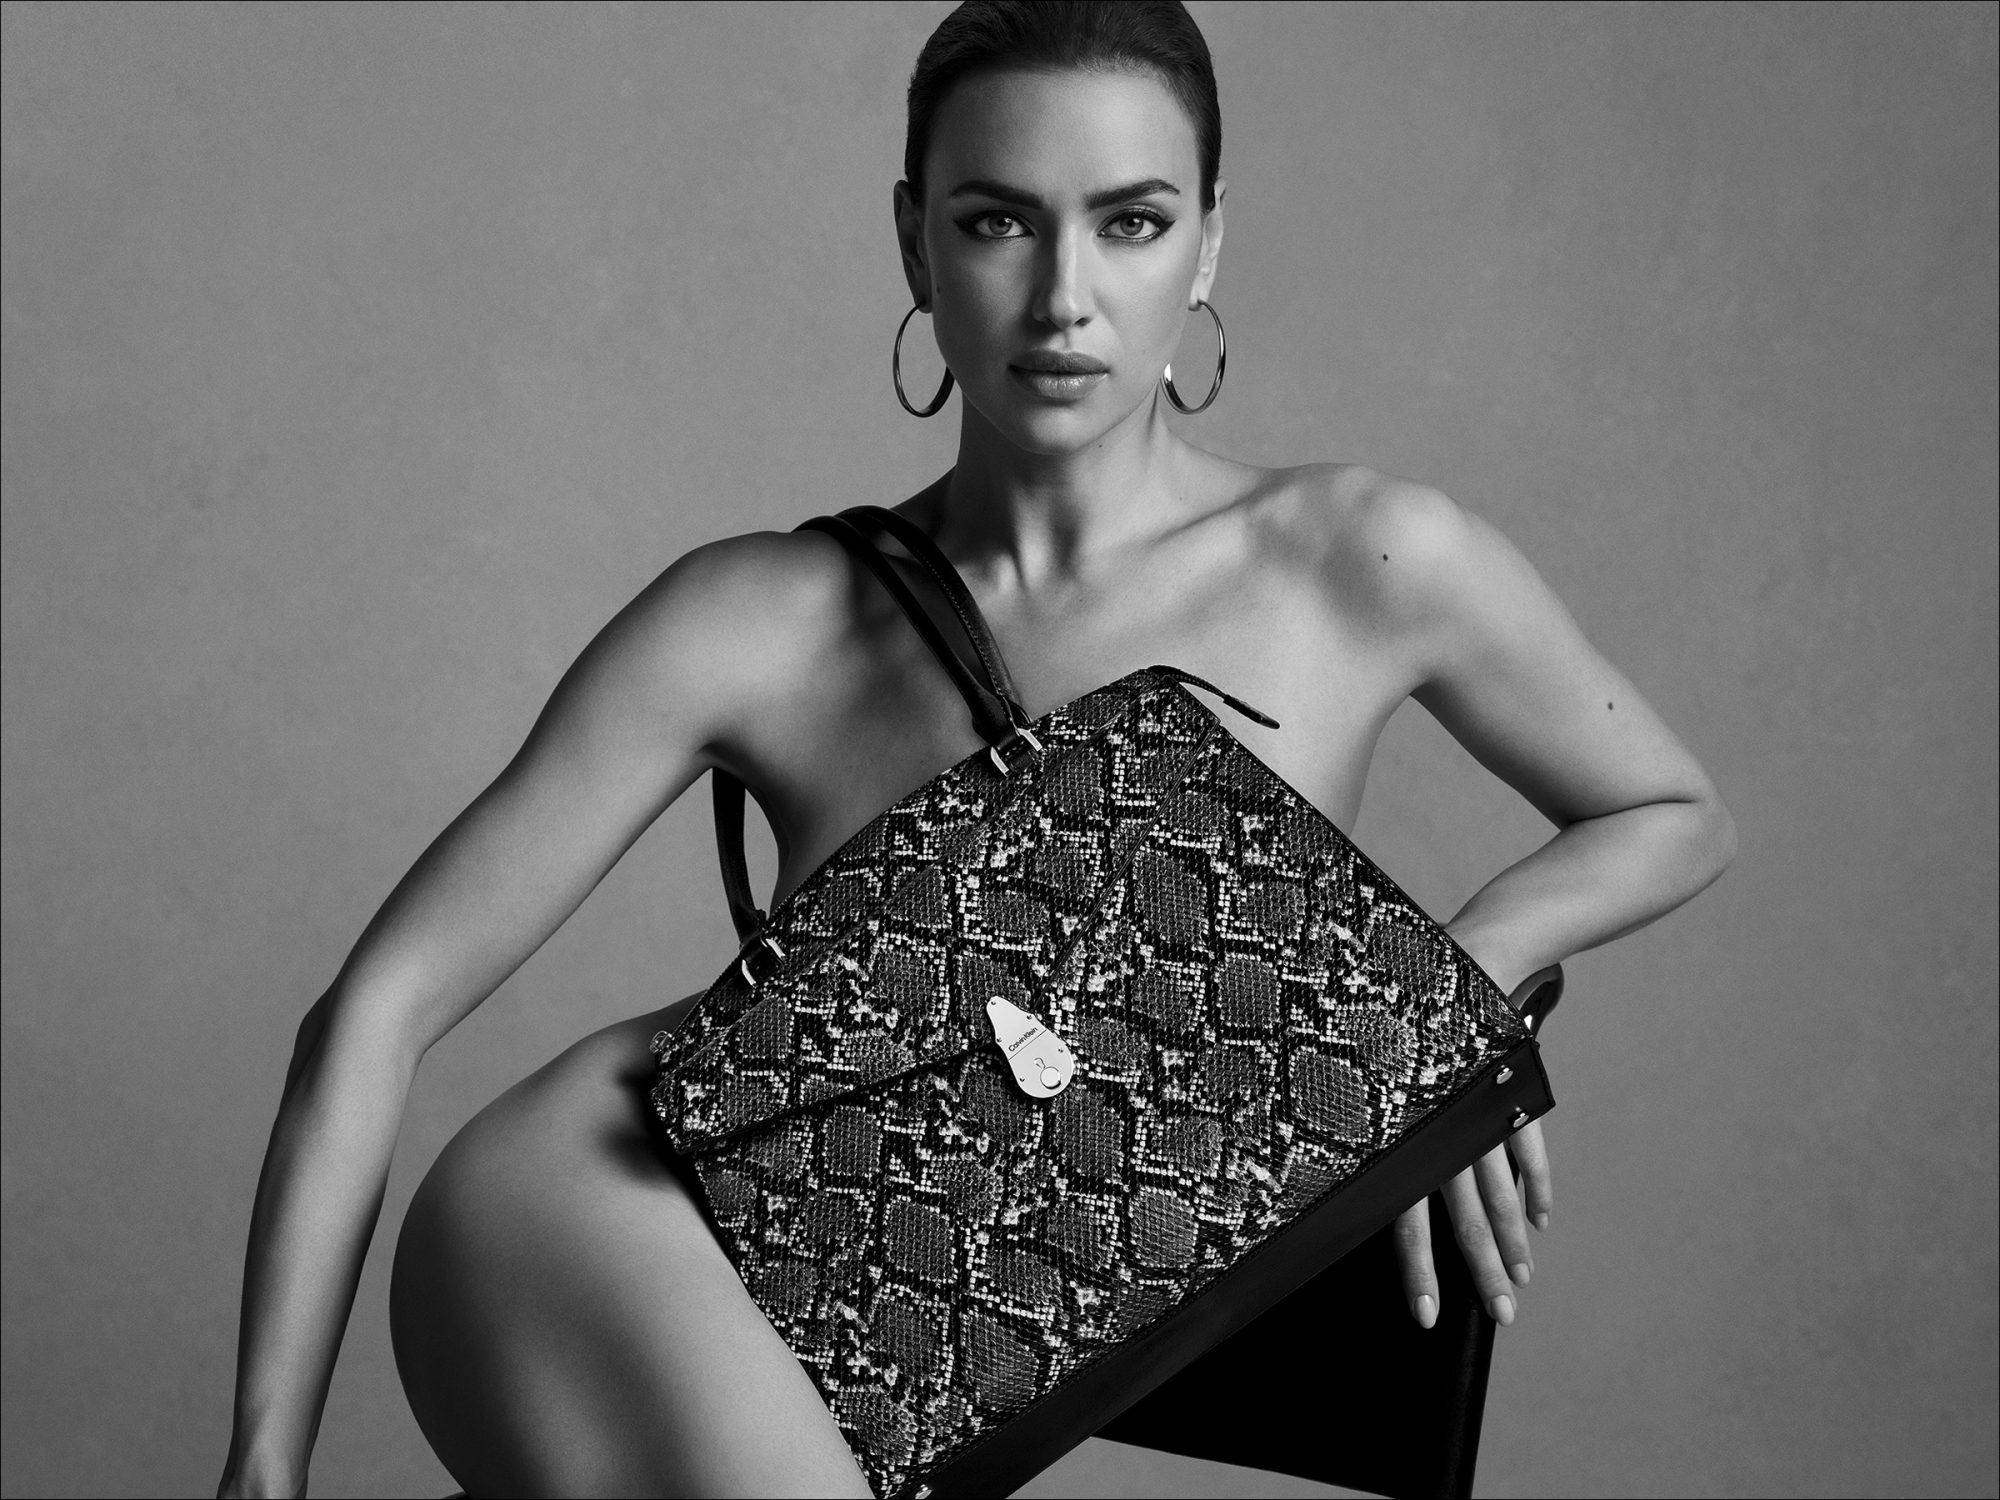 Irina Shayk Poses Nude in New Ad Campaign 3 Months After Bradley Cooper Split